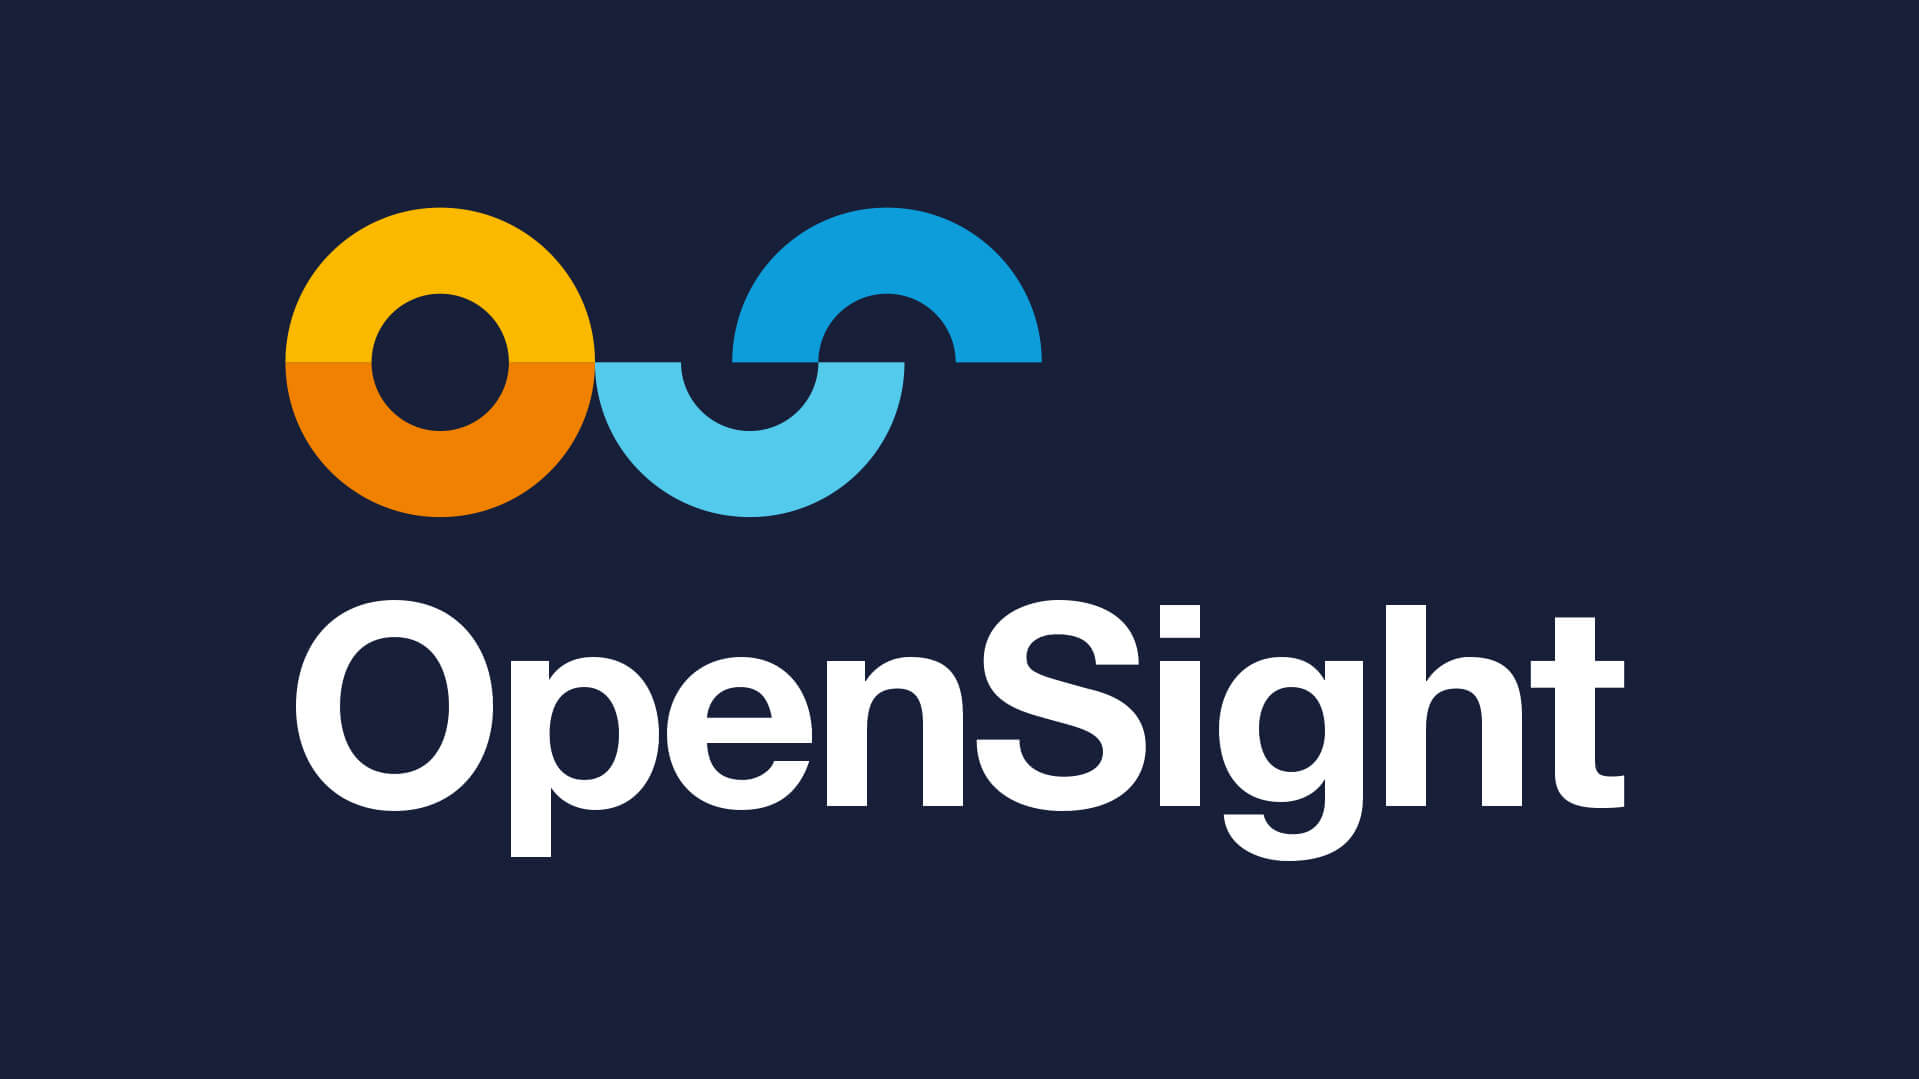 opensight